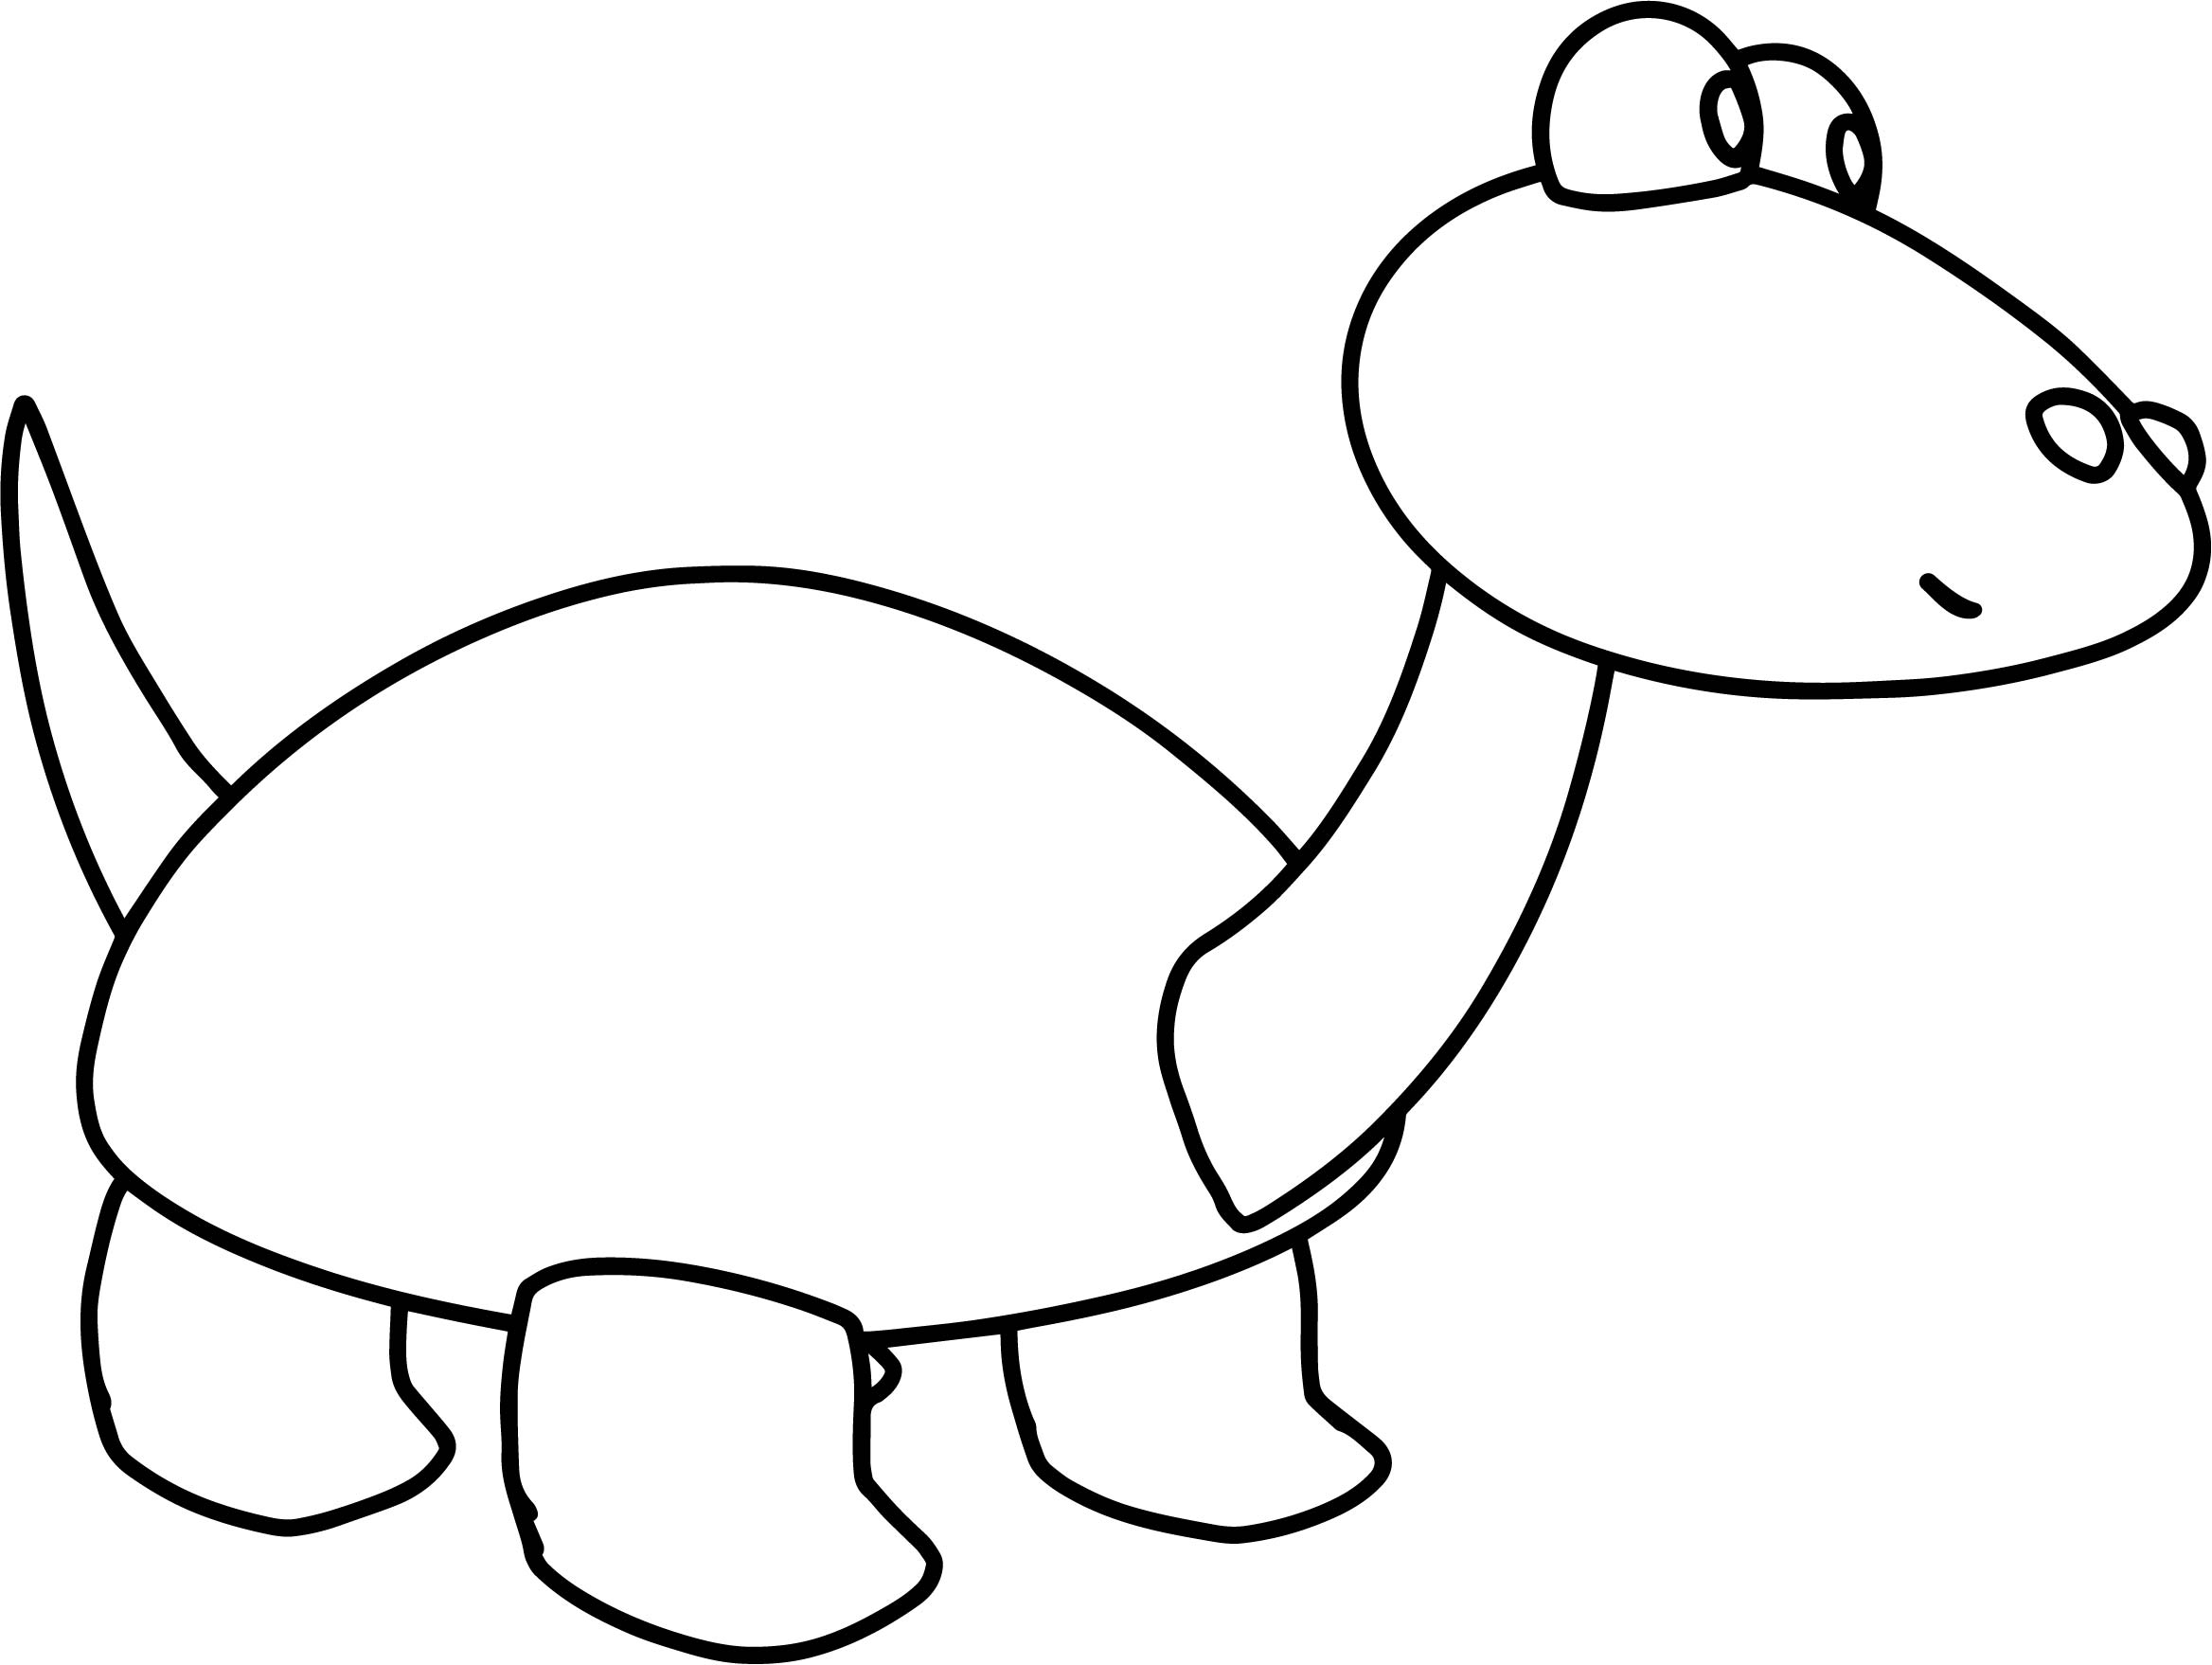 Cartoon Turtle Basic Easy Children Coloring Page Sheet